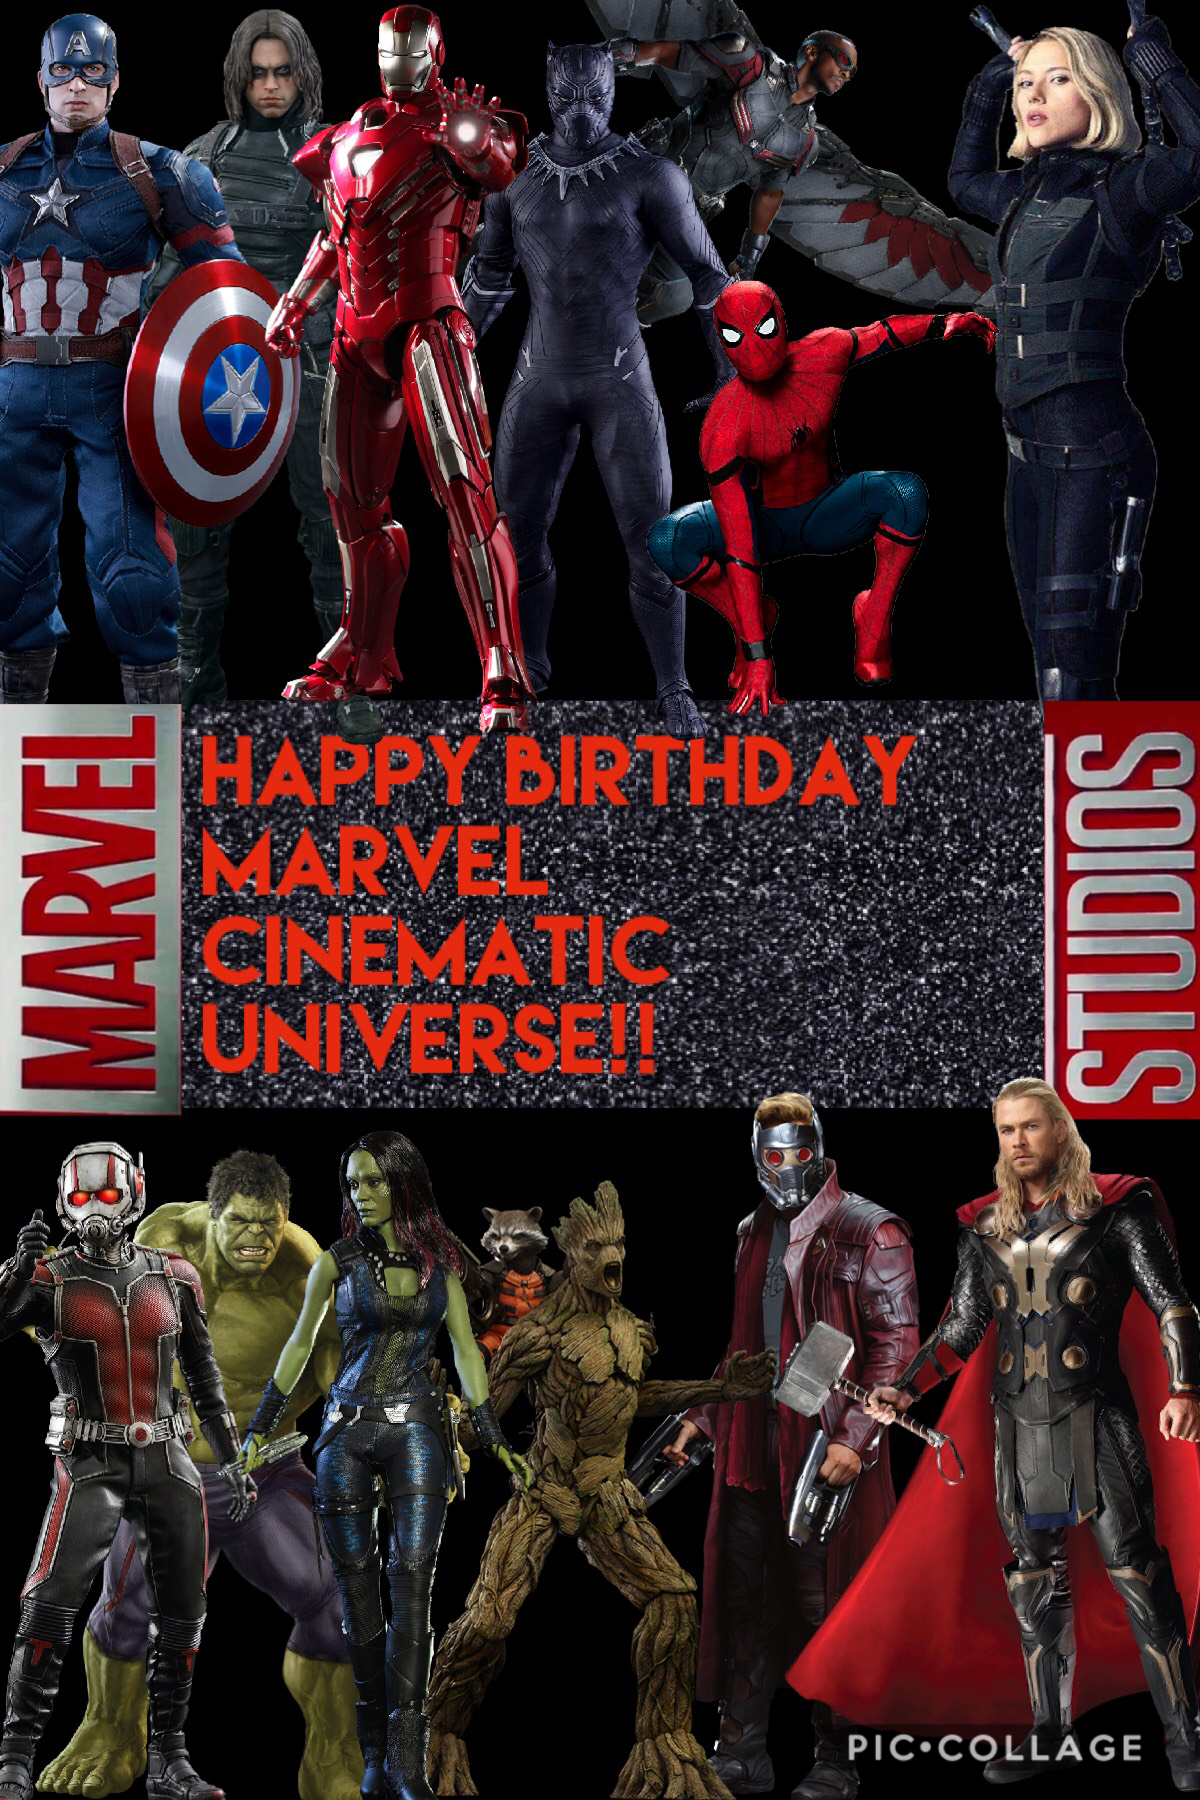 I've loved marvel ever since I can remember and I can't believe it's already been 10 years since the beginning of the MCU. Marvel will forever always be one of my favourite things on earth🙌🏻🙌🏻 HAPPY BIRTHDAY!!!!💫🔥🙌🏻💫😂😂😢😘😢❤️❤️💖💖💗